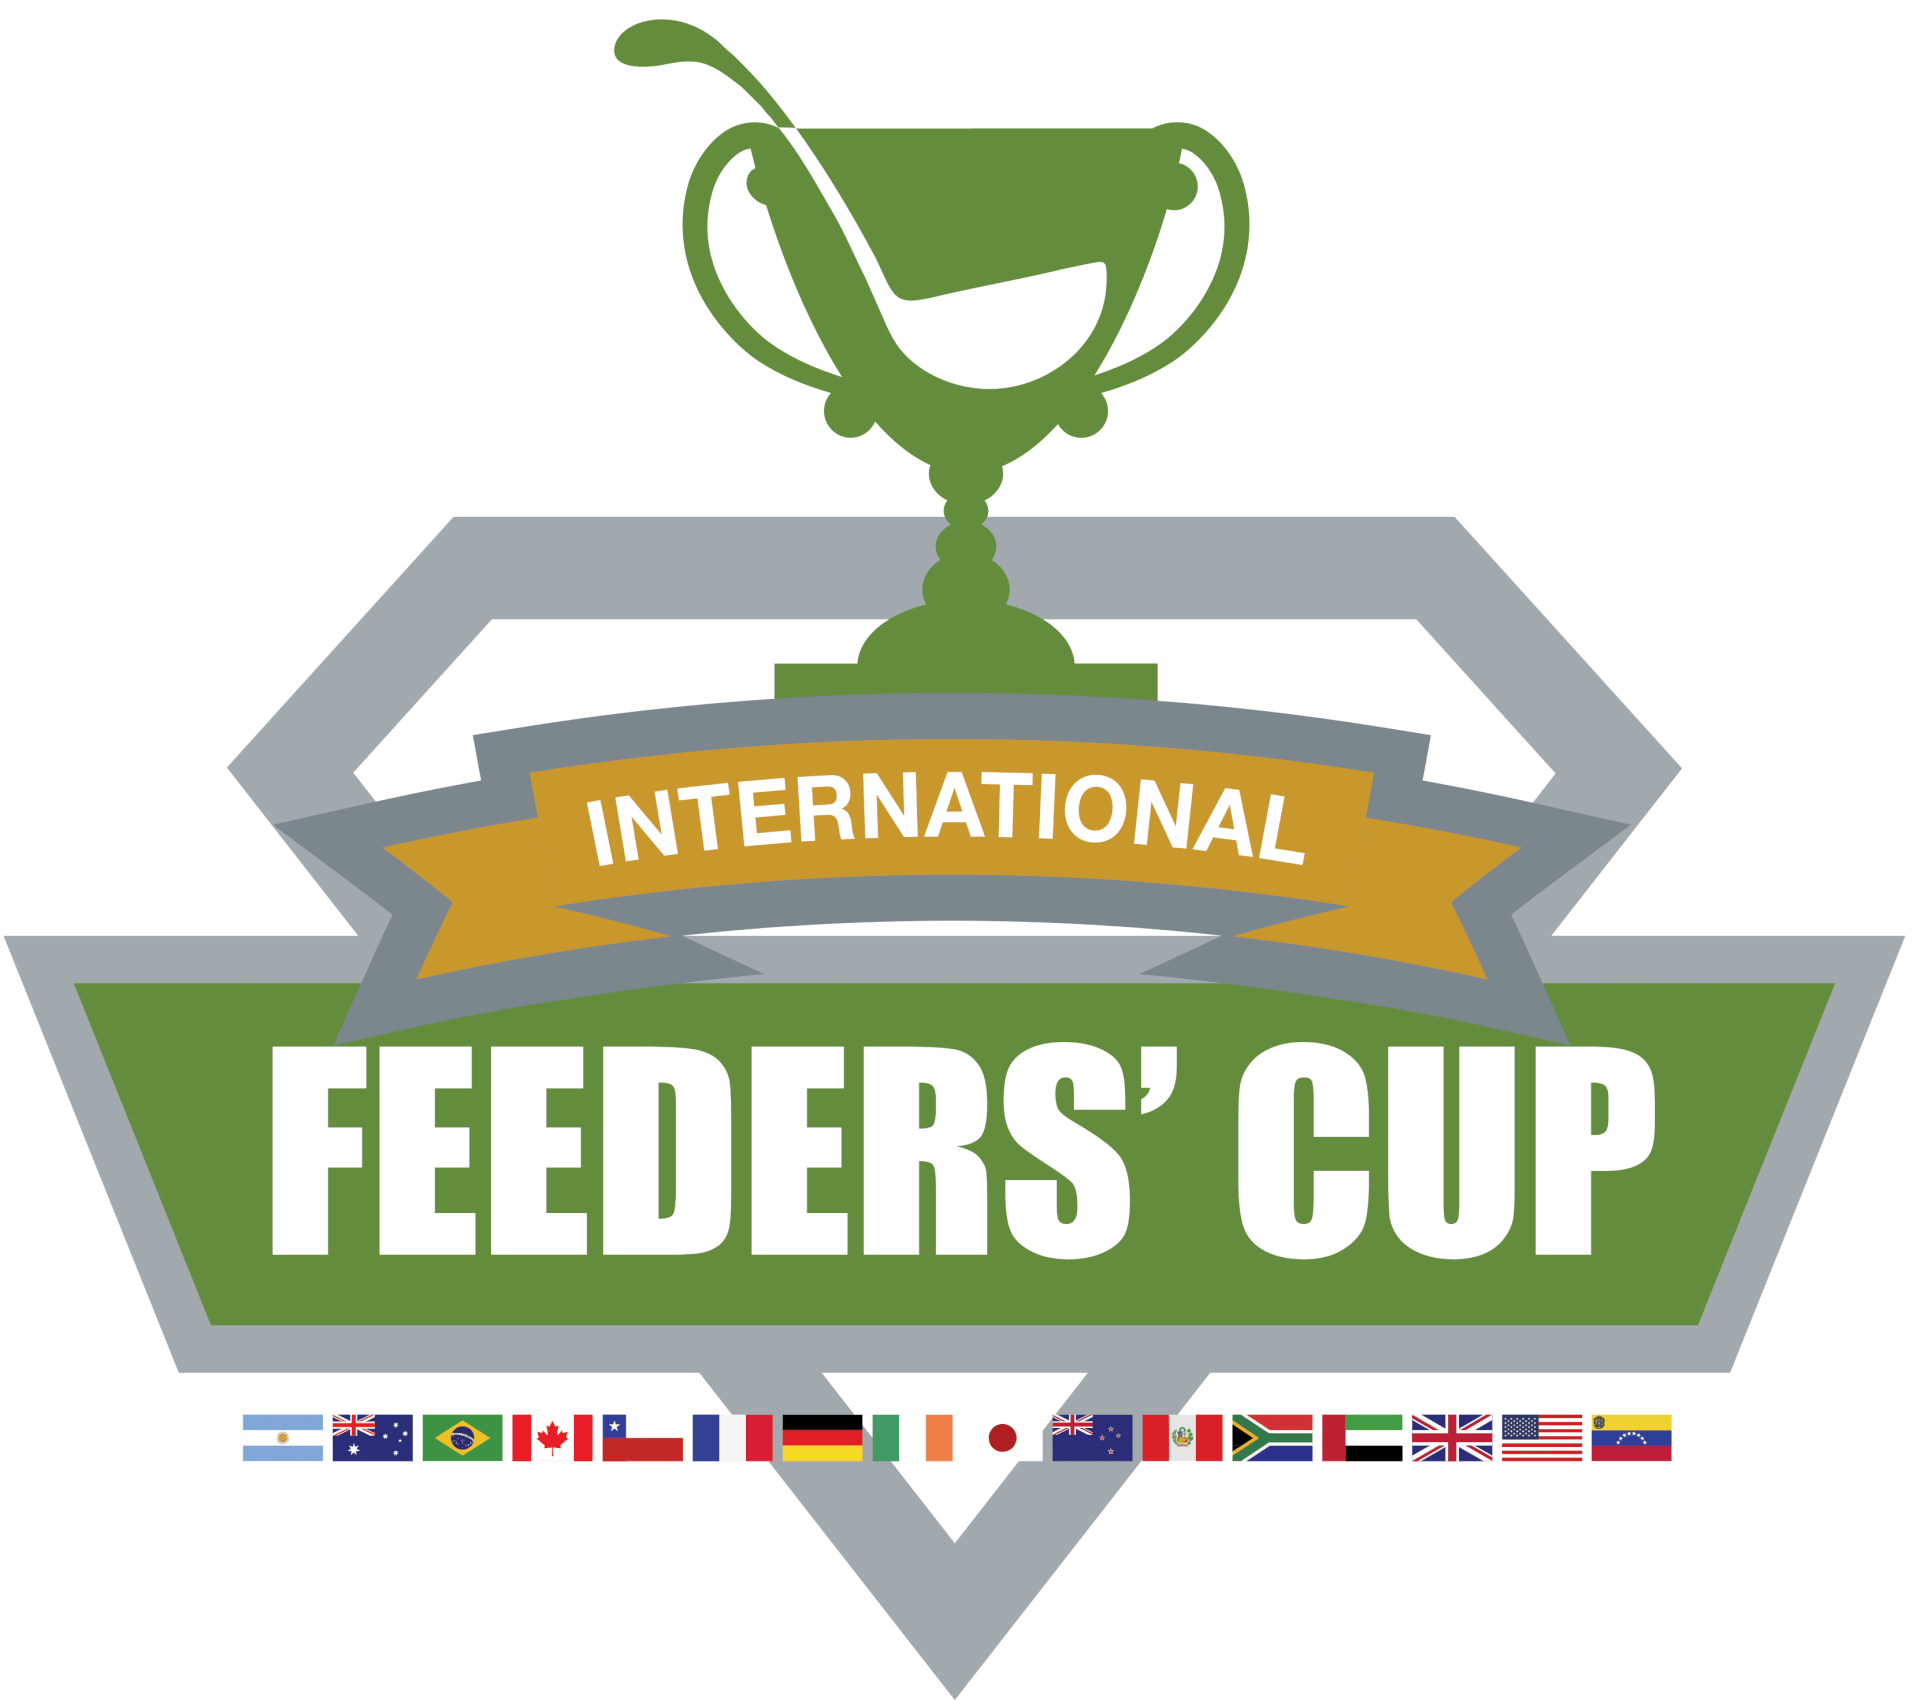 Feeders' Cup